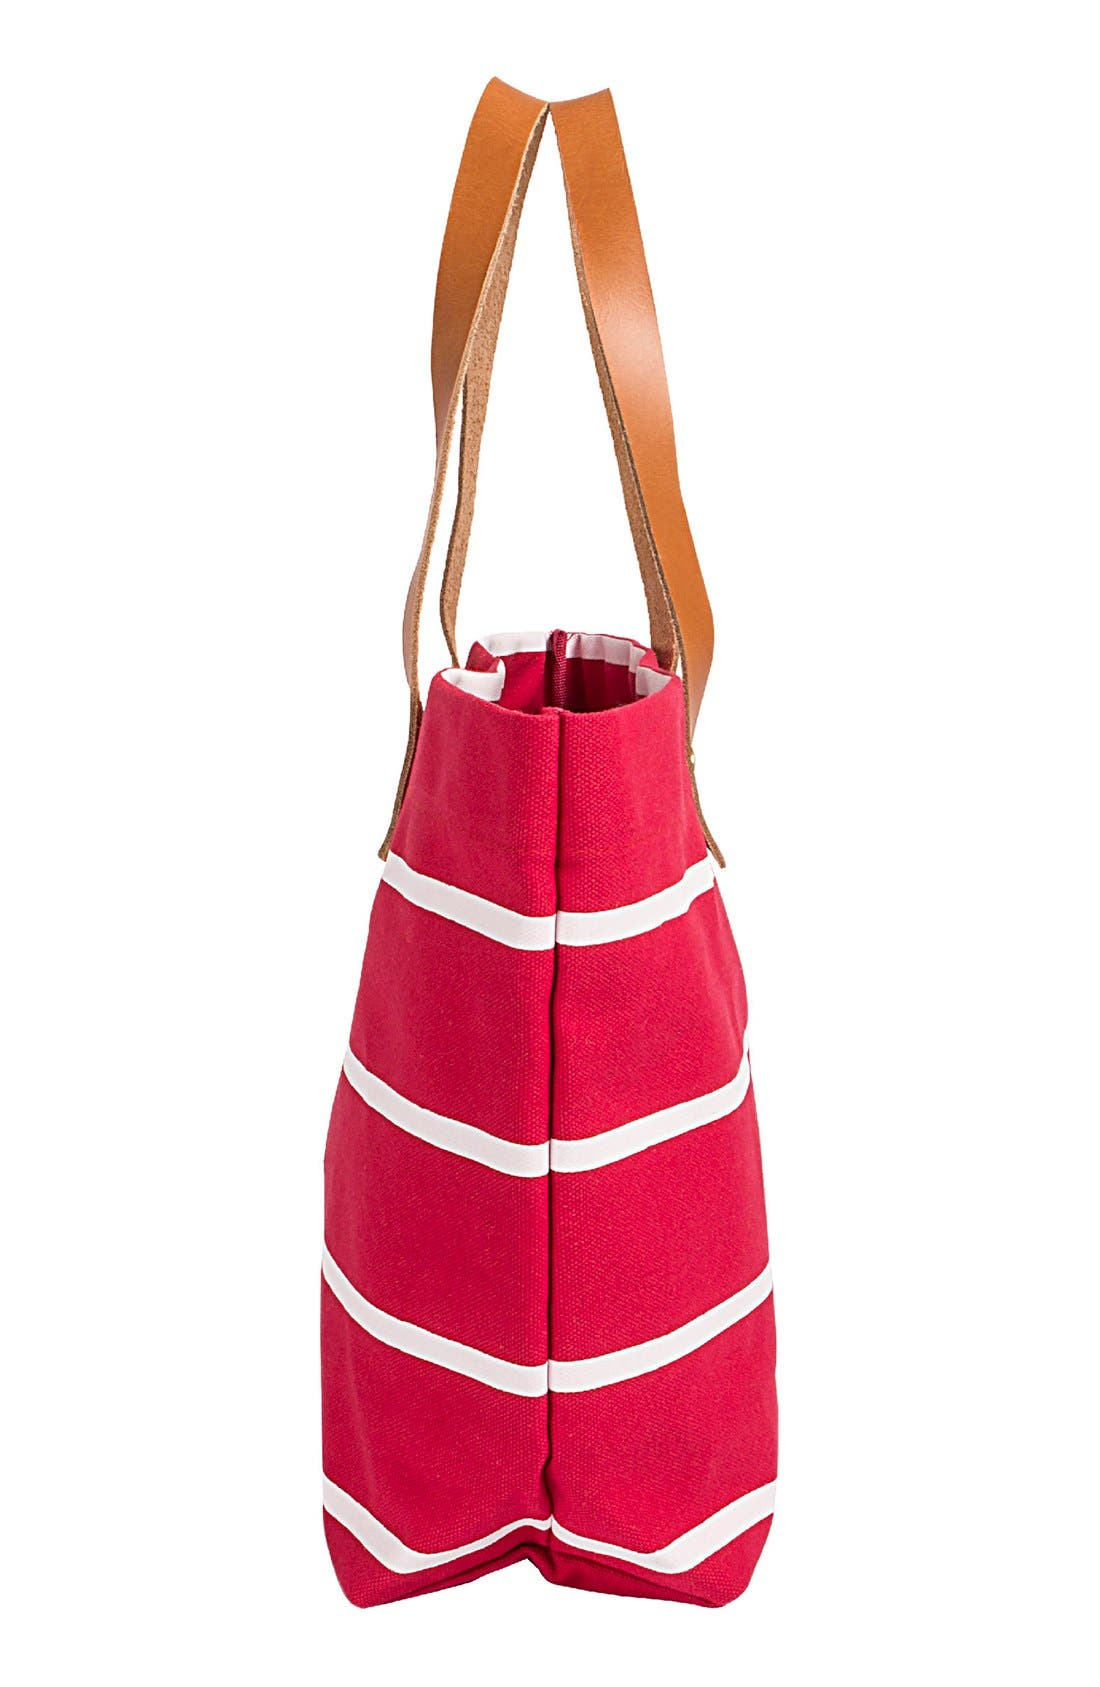 Alternate Image 3  - Cathy's Concepts Monogram Stripe Tote